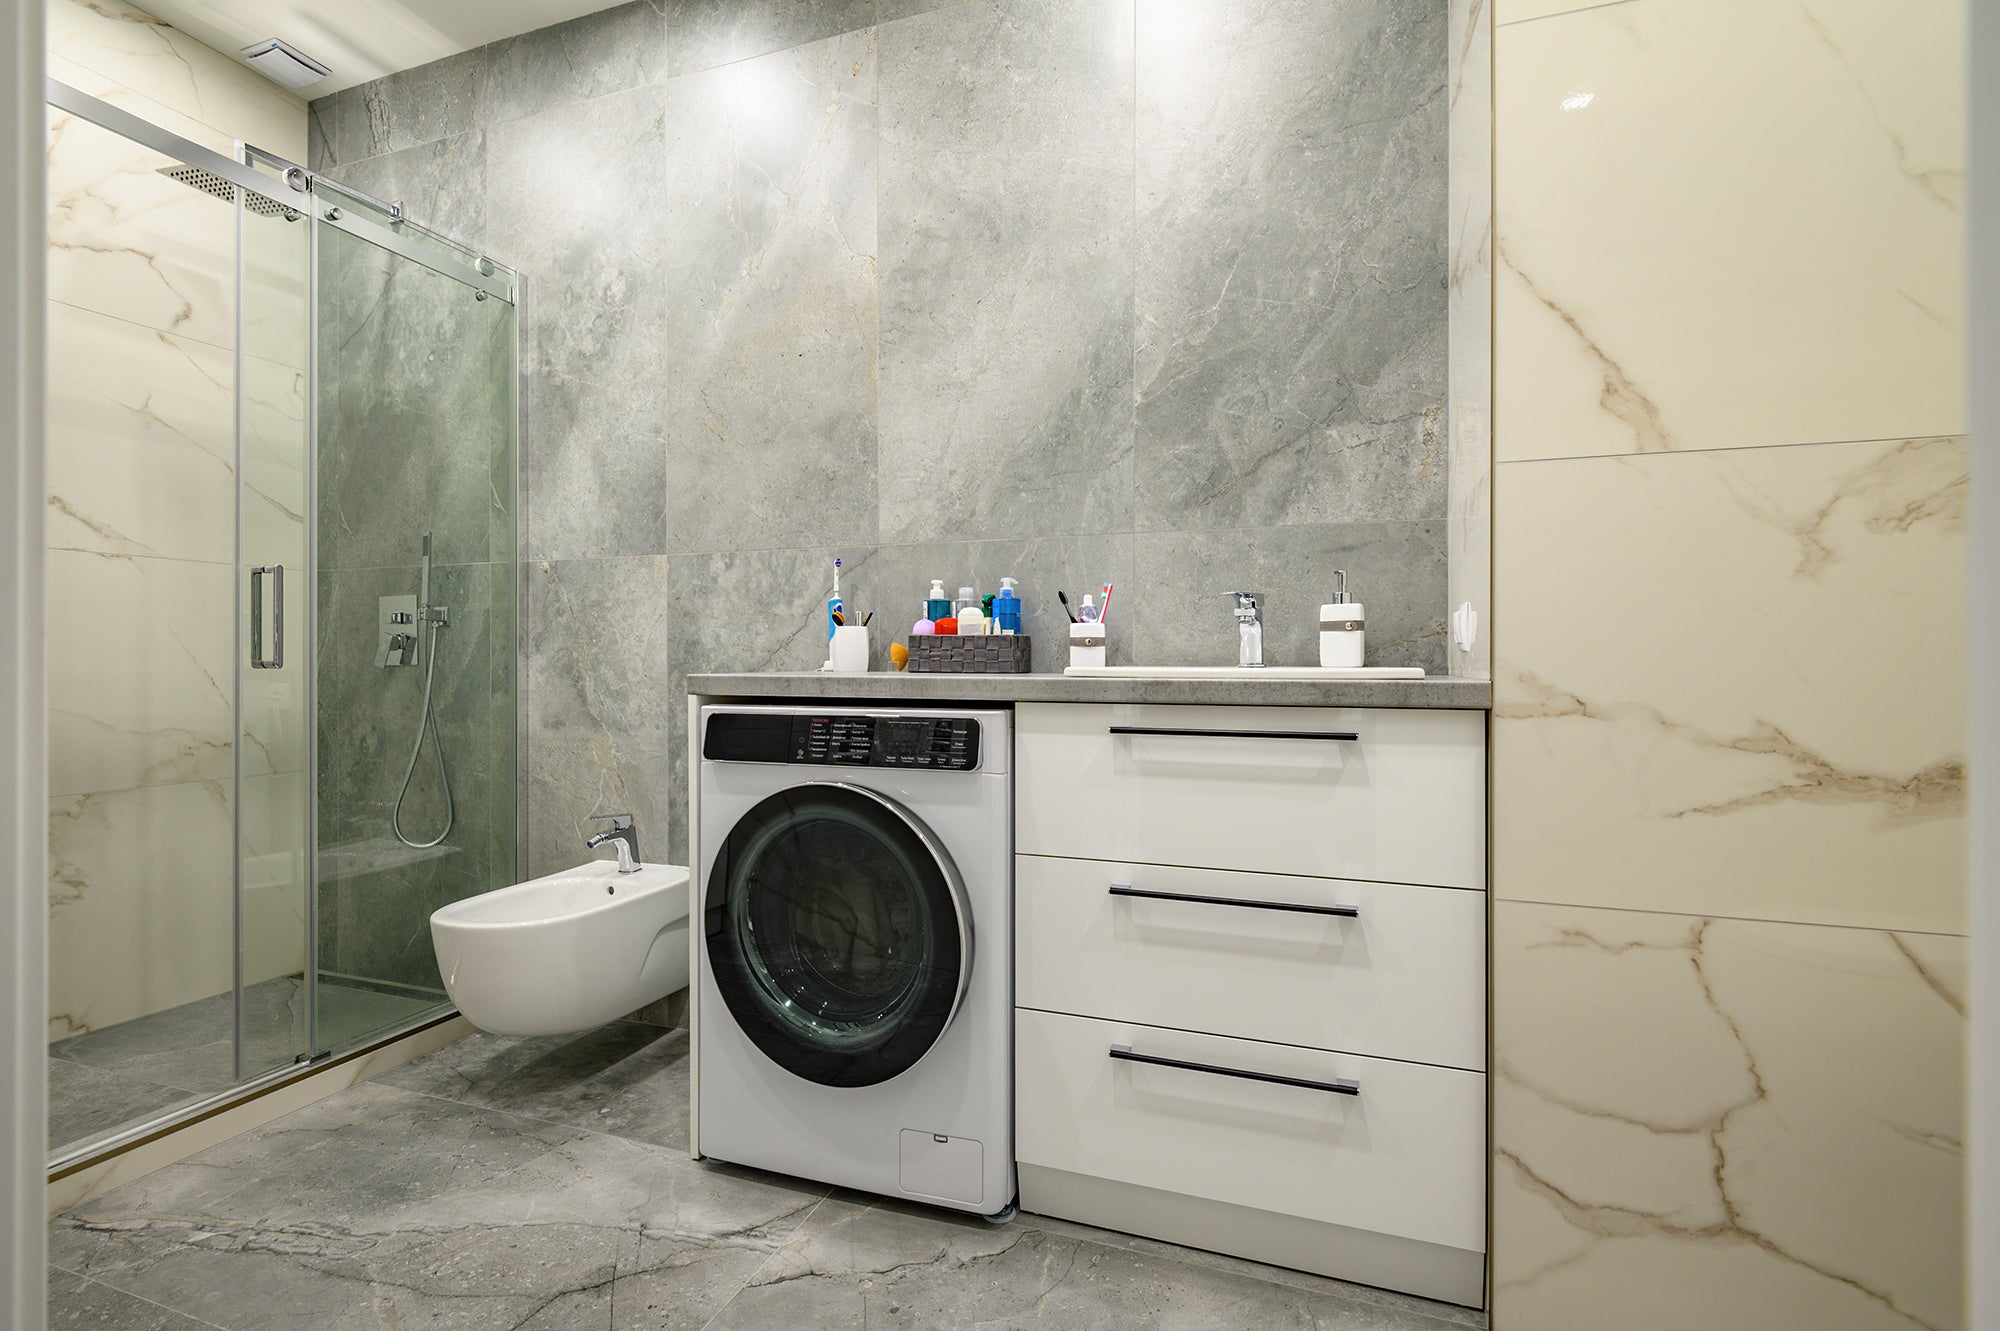 Caring for Laundry Area